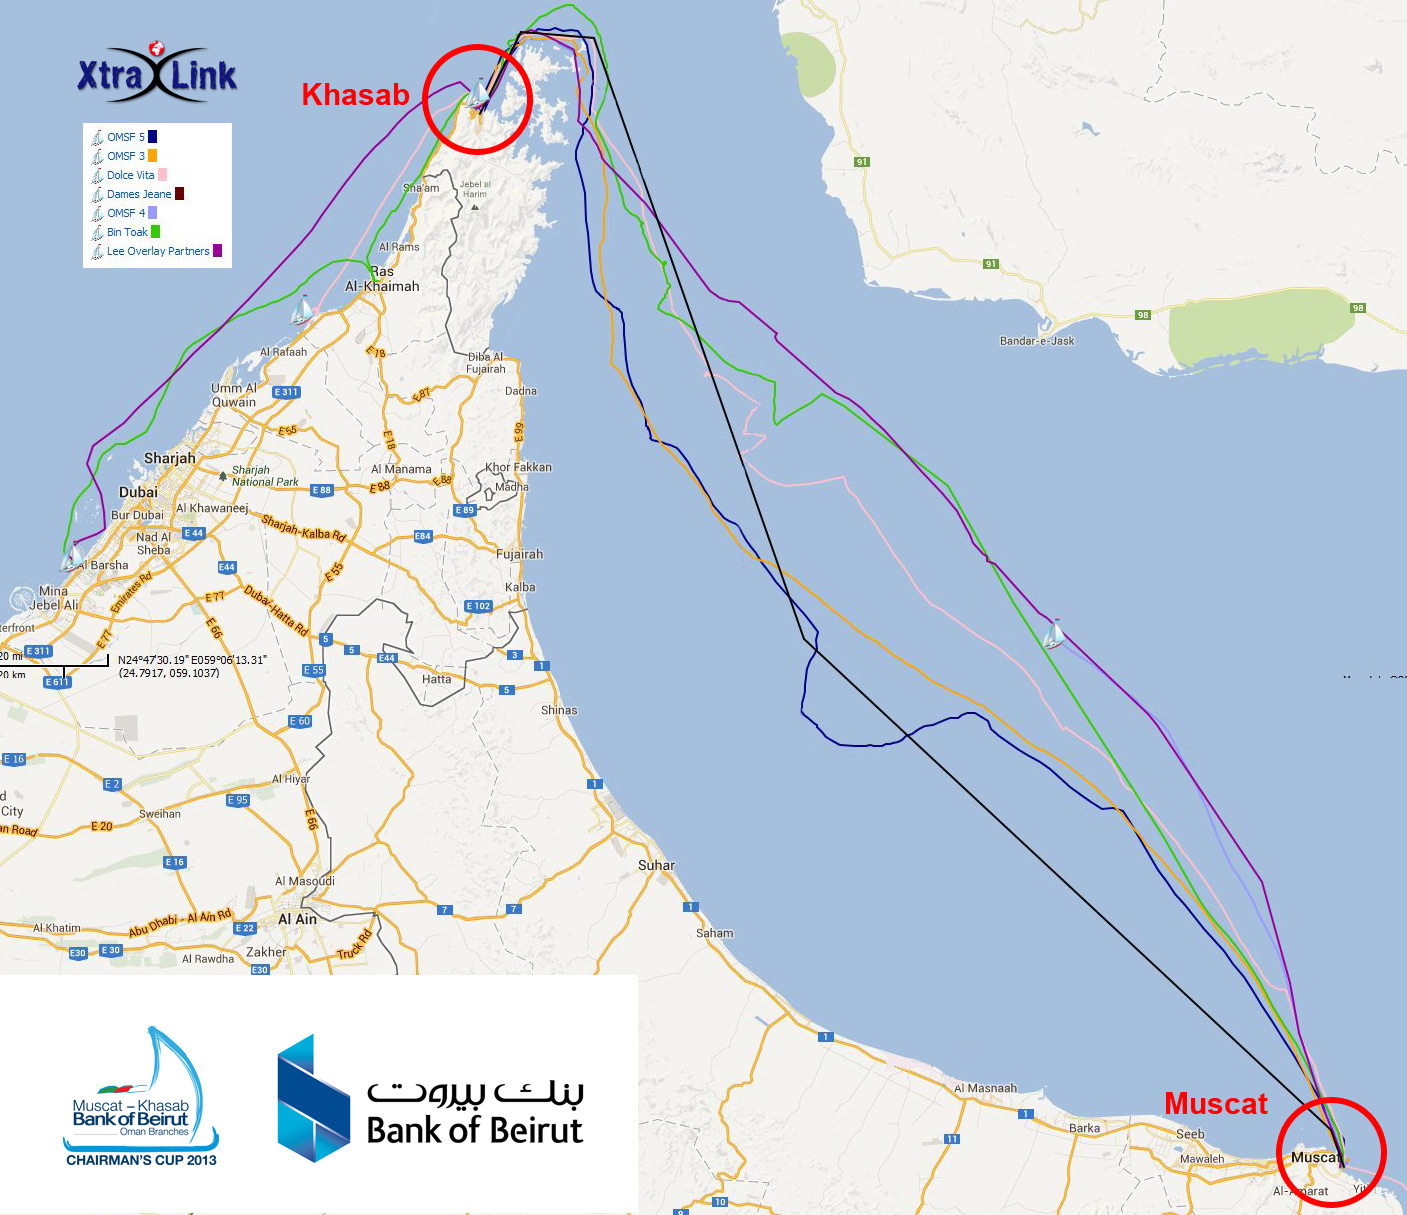 2013 Bank of Beirut Chairman's Cup Tracking